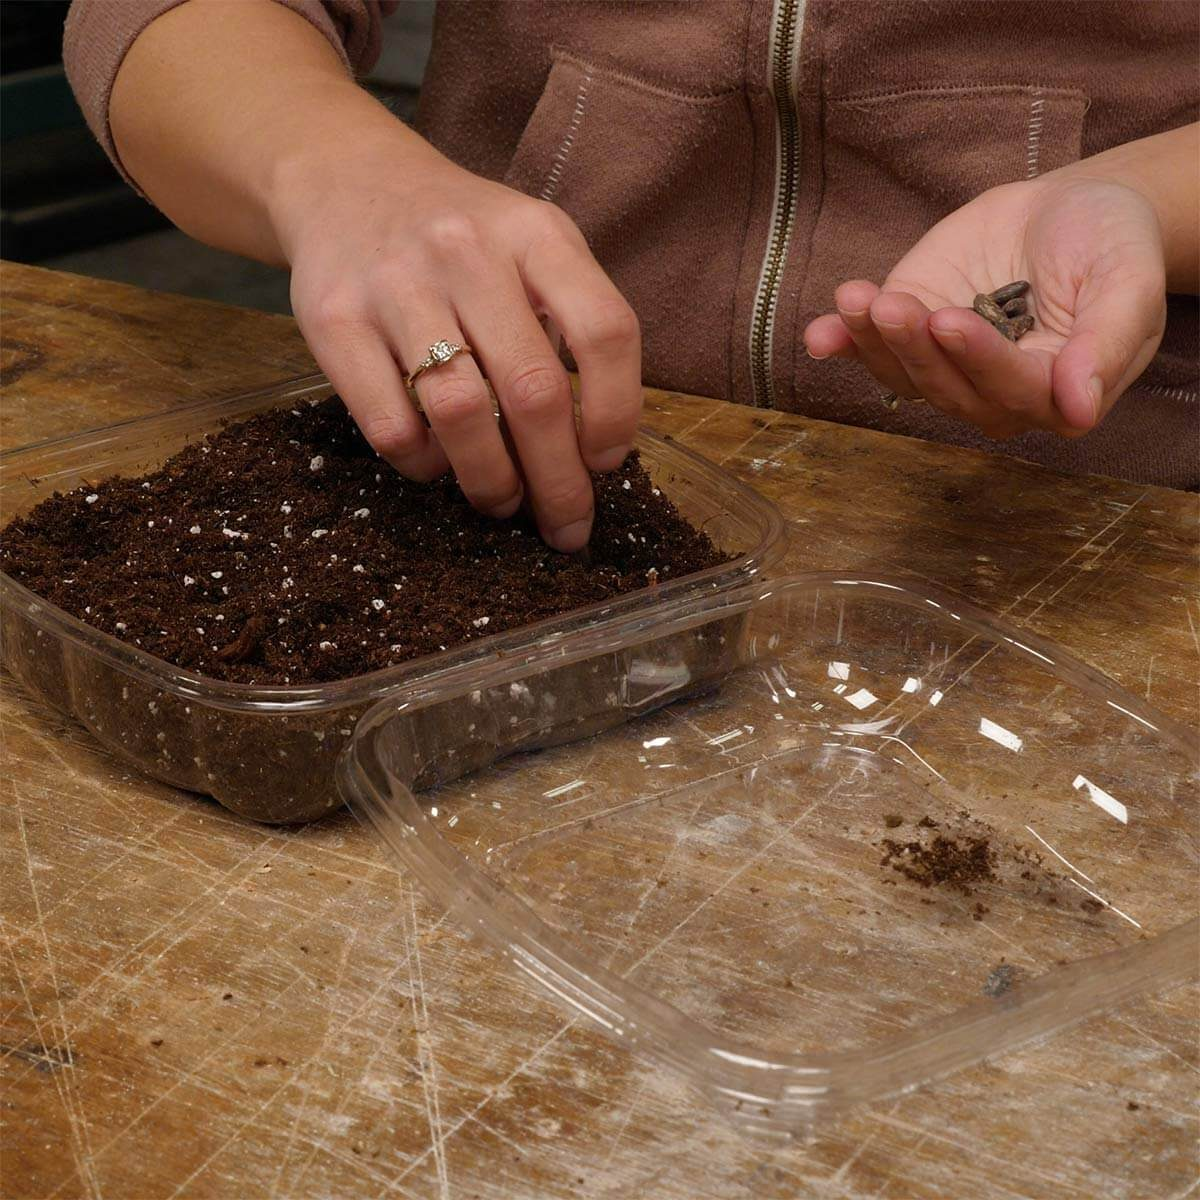 planting seeds in plastic clamshell container